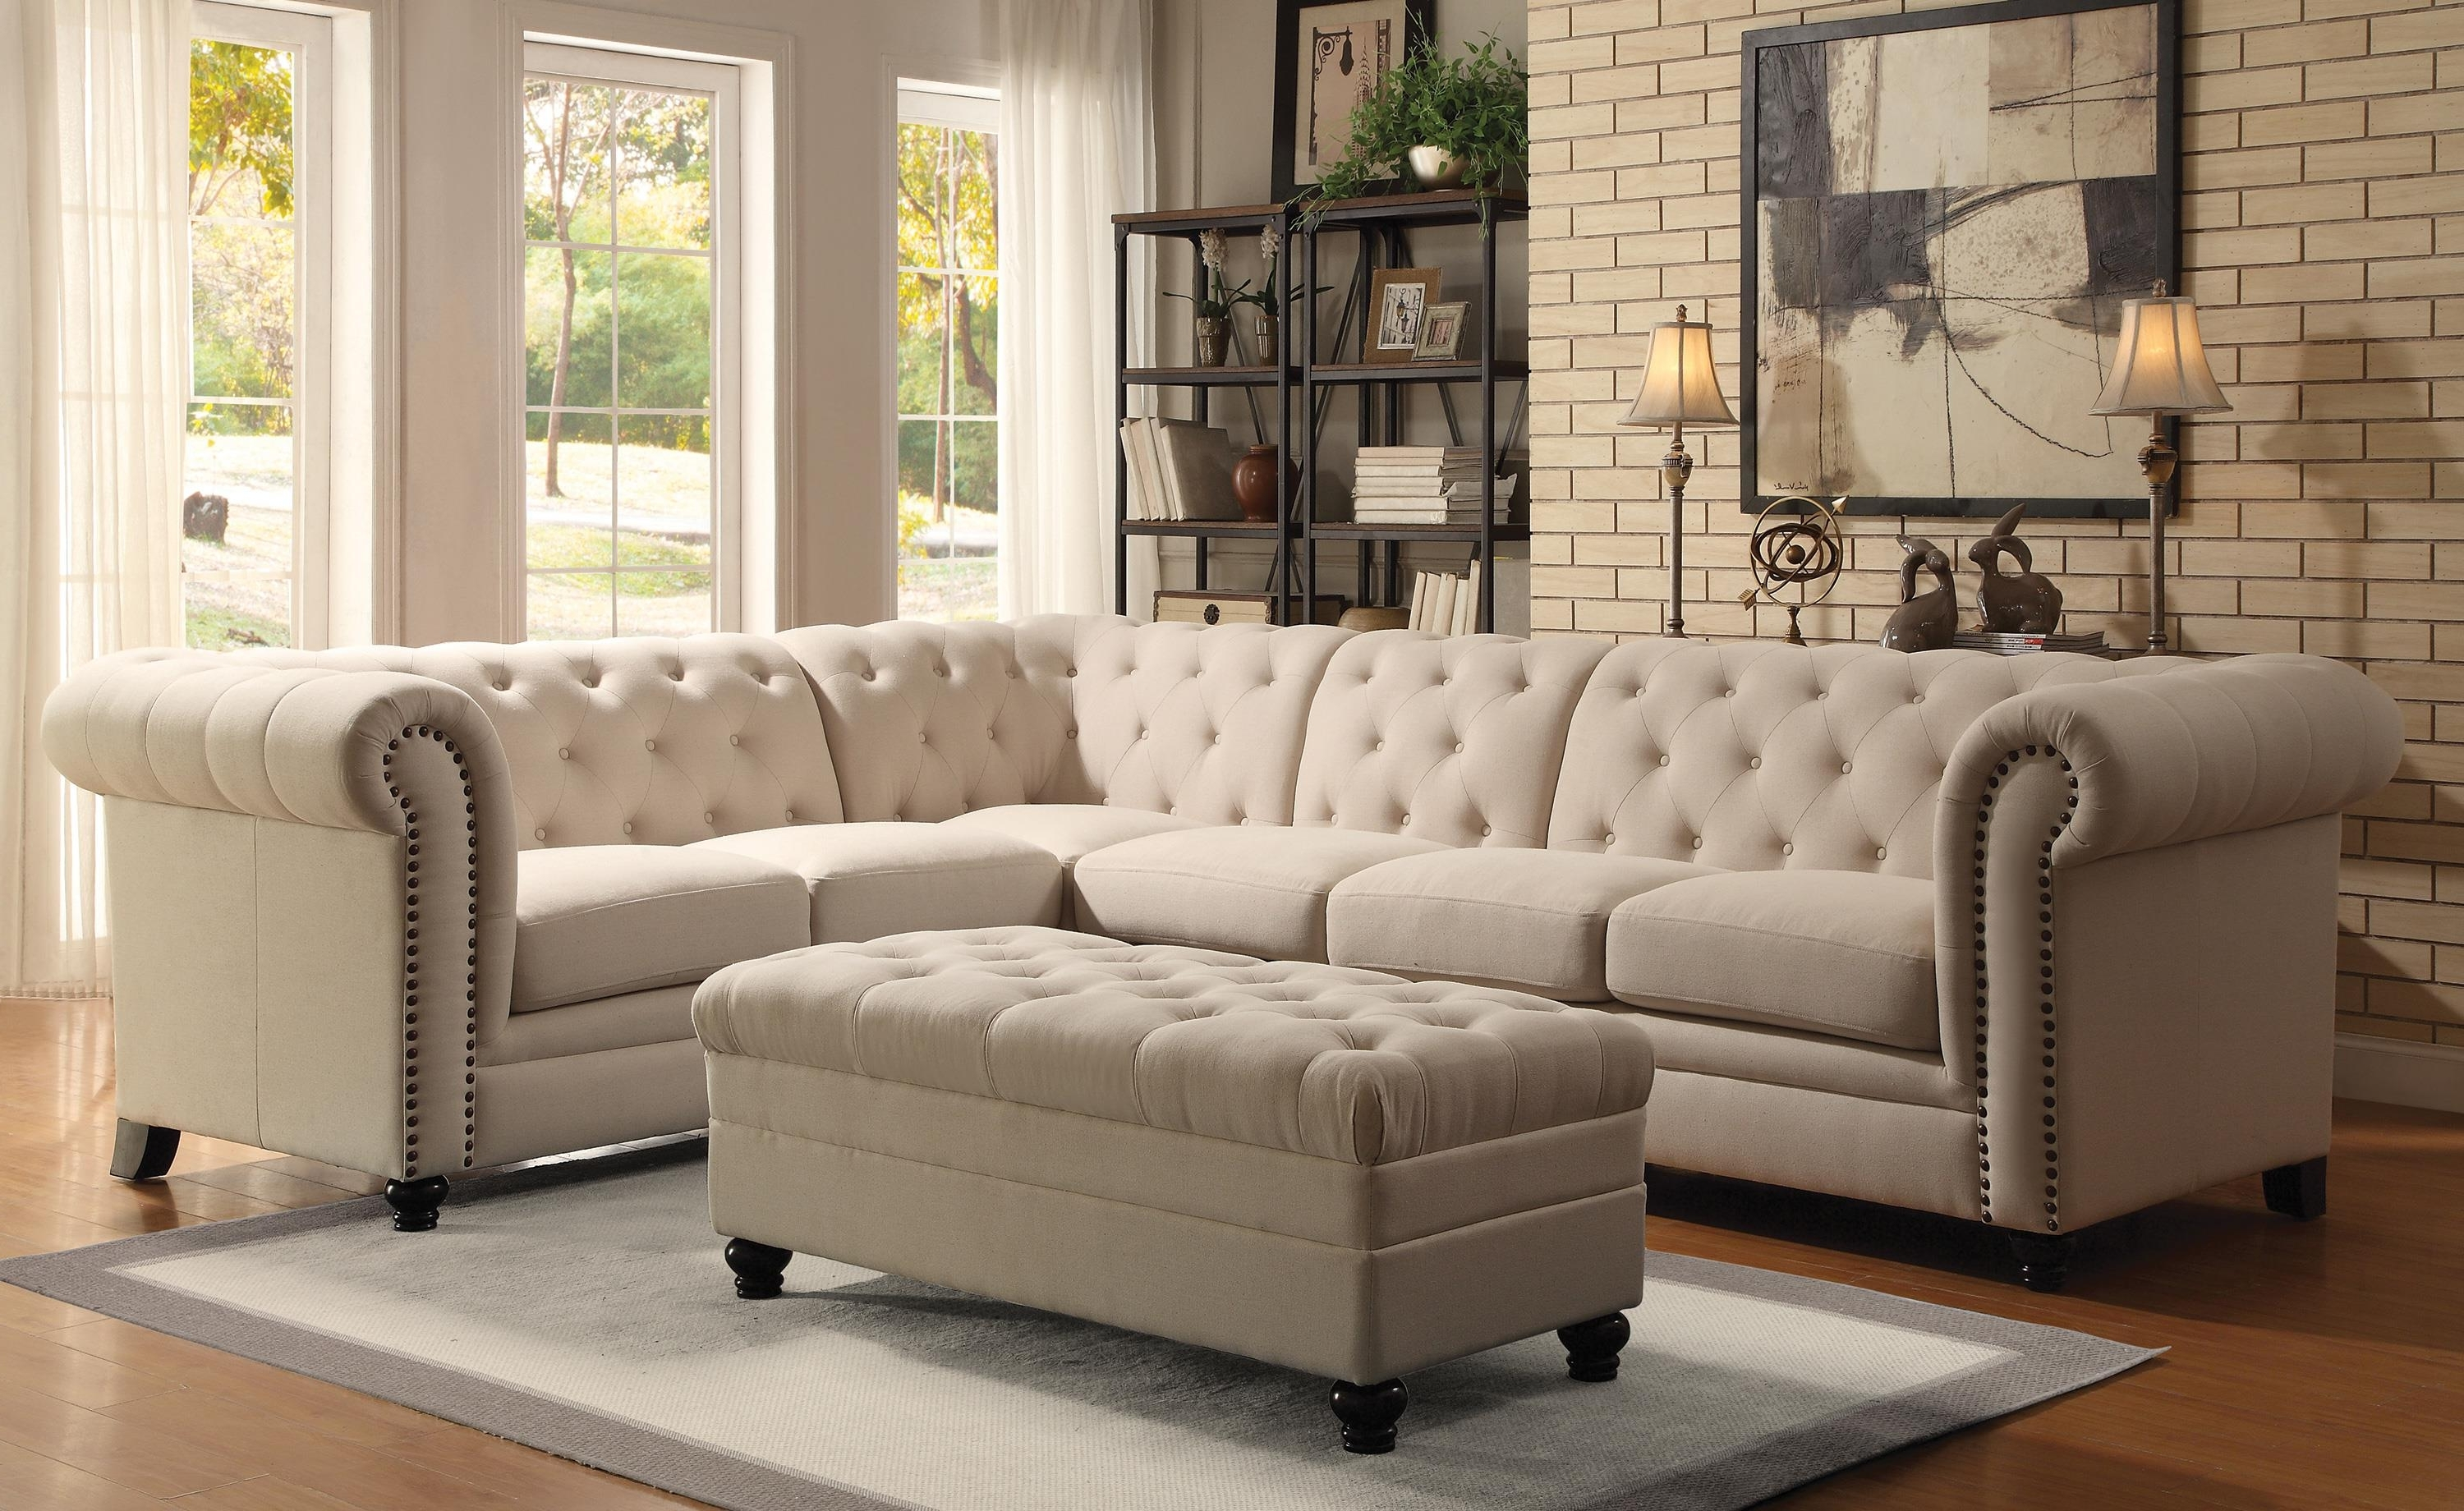 2018 Light Brown Fabric Ashley Furniture Sectional L Sofa Sleeper With Regarding Ashley Tufted Sofas (View 1 of 15)